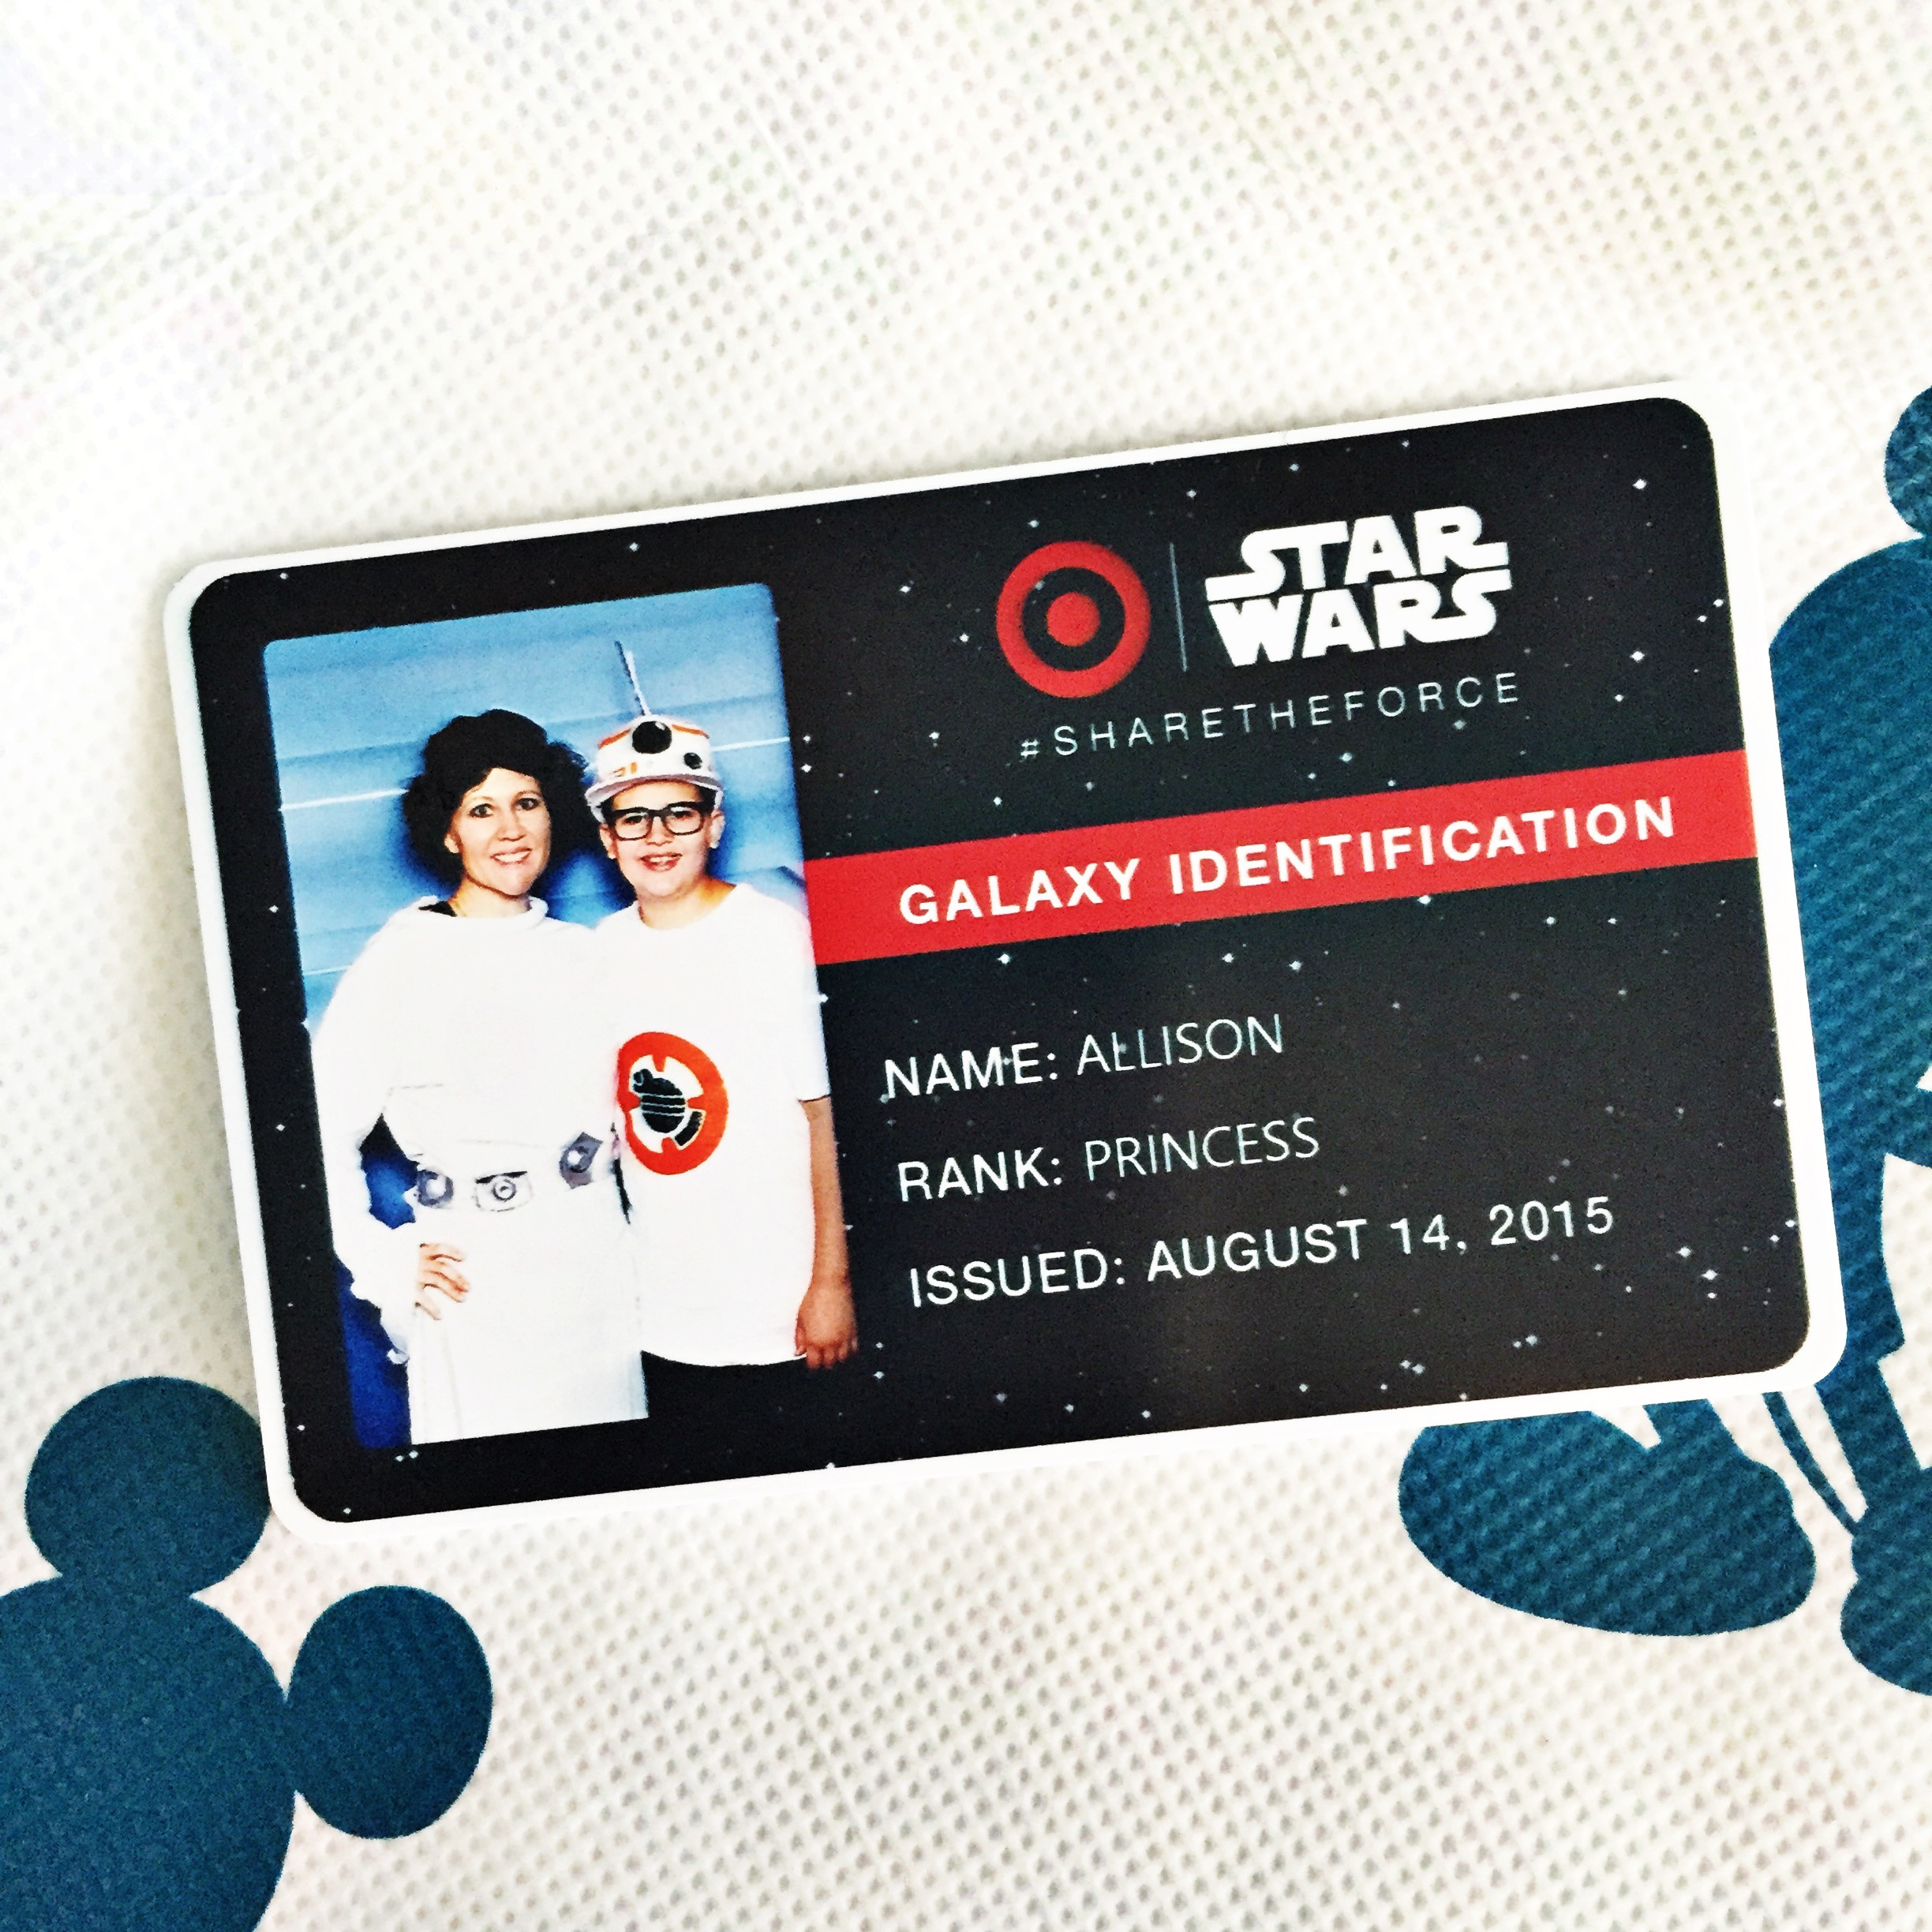 Star Wars and Target #sharetheforce at D23 Expo